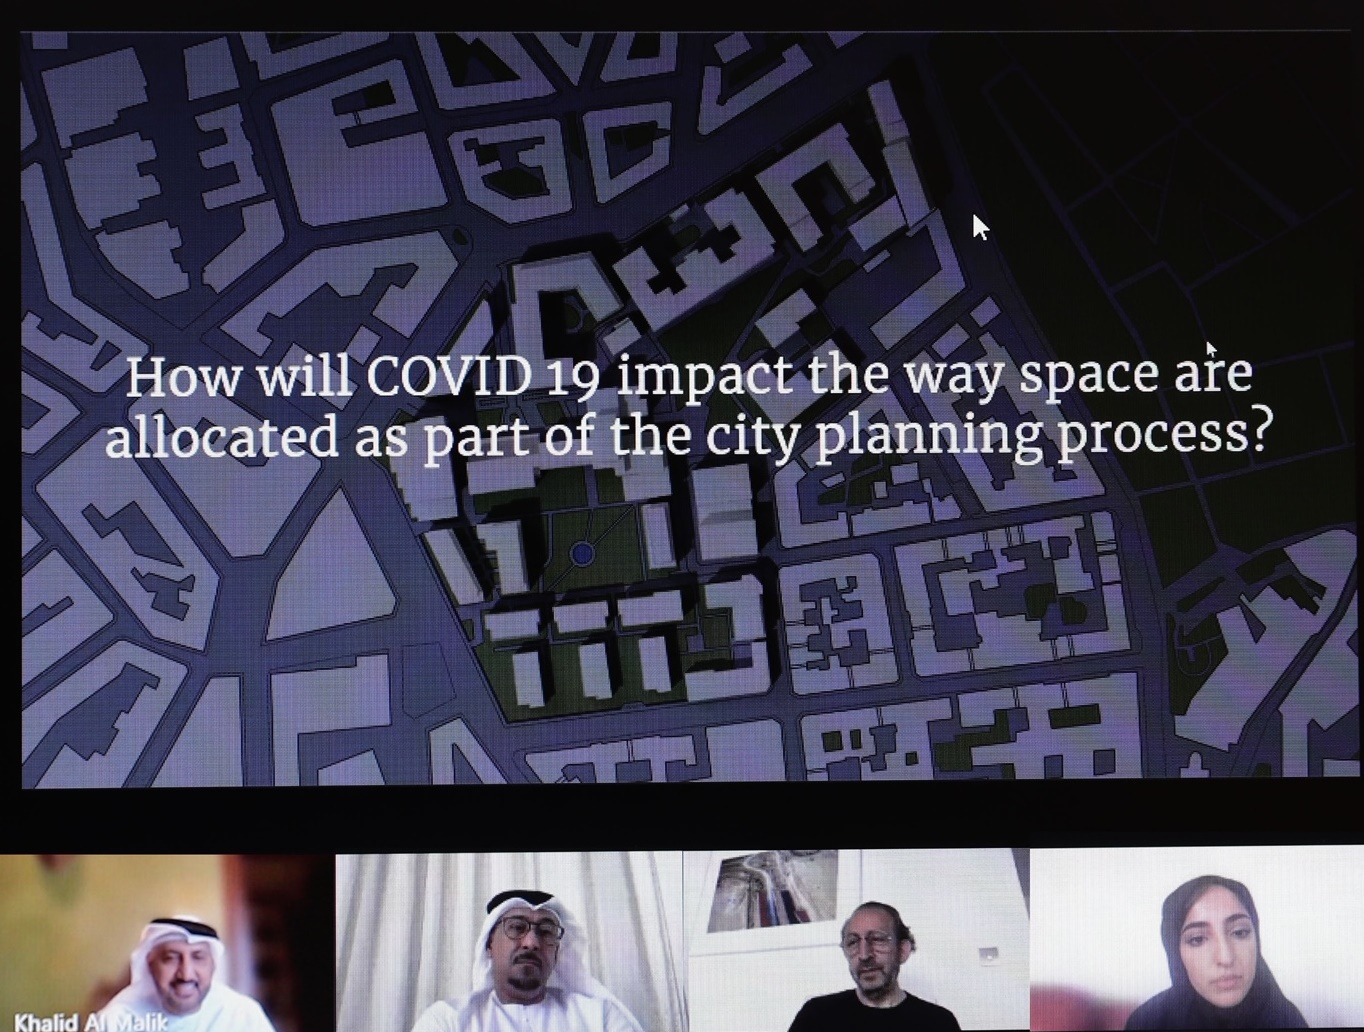 Dubai Future Council discusses life after Covid-19